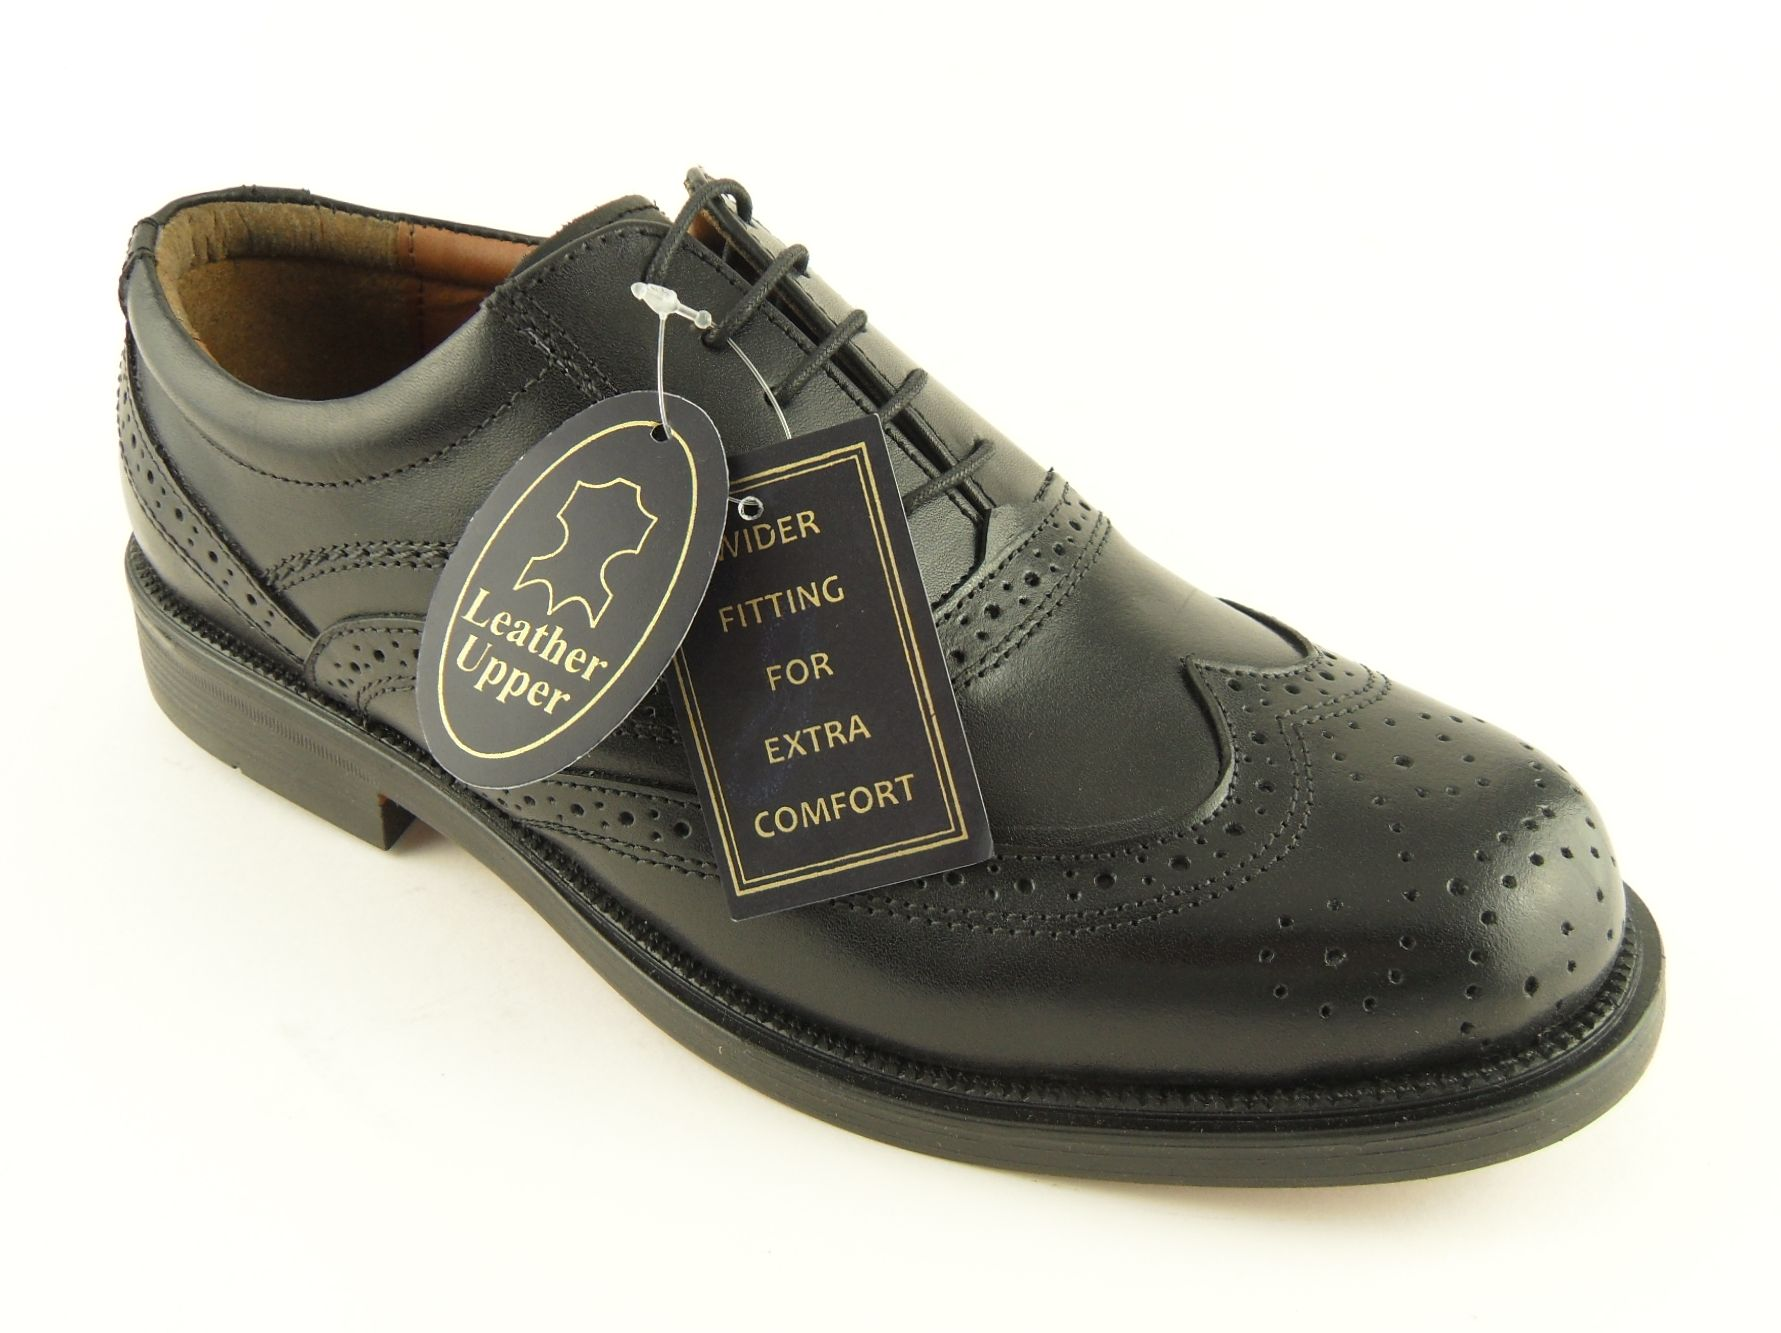 mens scimitar black leather brogues shoes wide fit 6 13 ebay